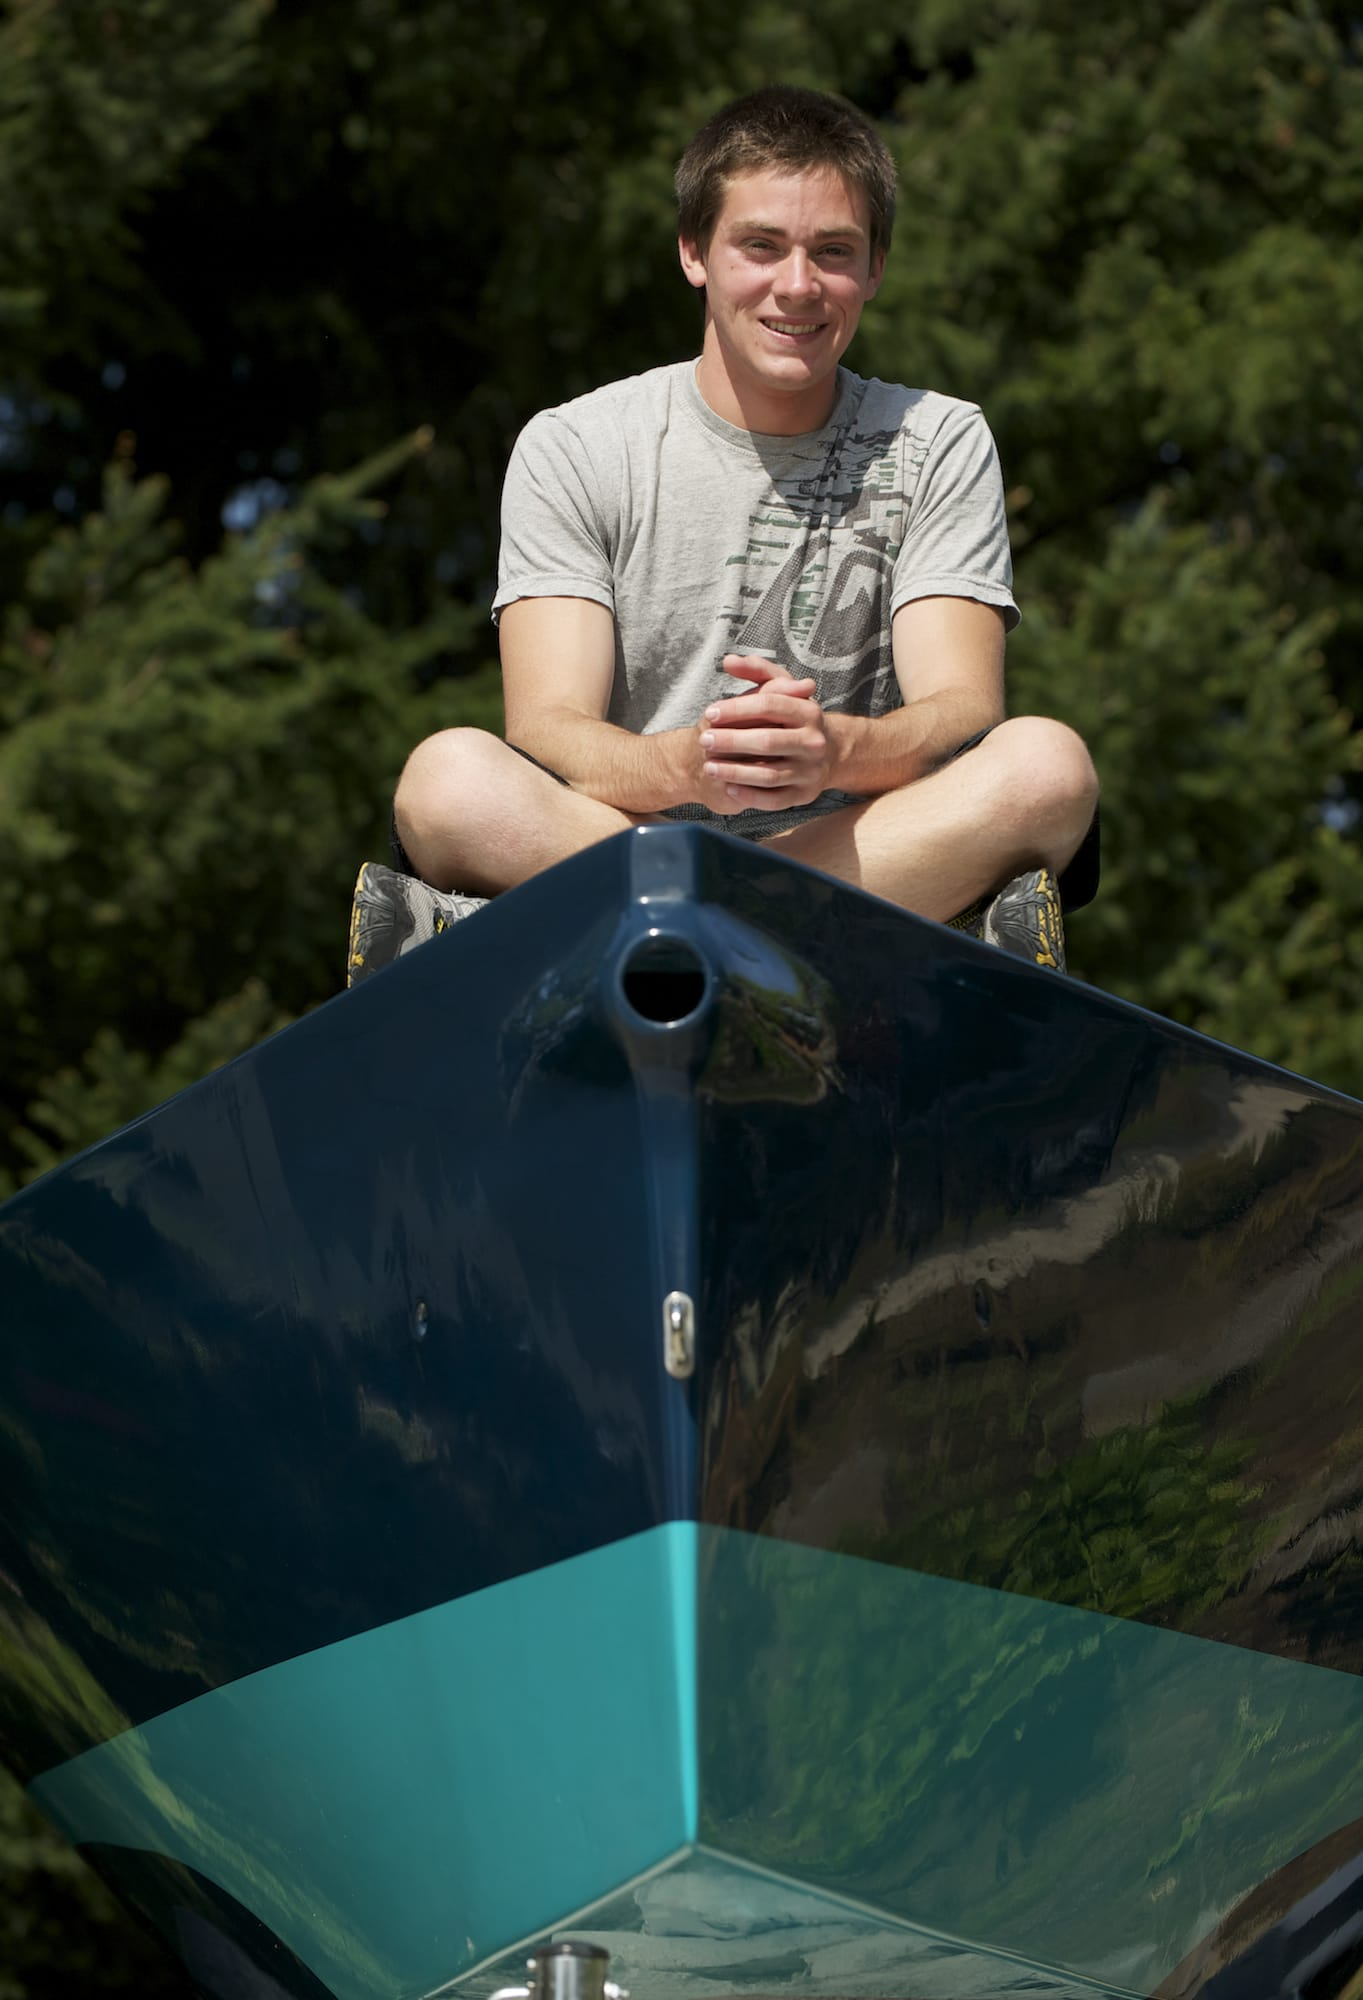 Camas High School senior Stephen Moran sits atop his i550 racing sailboat Friday afternoon. Moran spent seven months and 300 hours building the boat for his senior project.